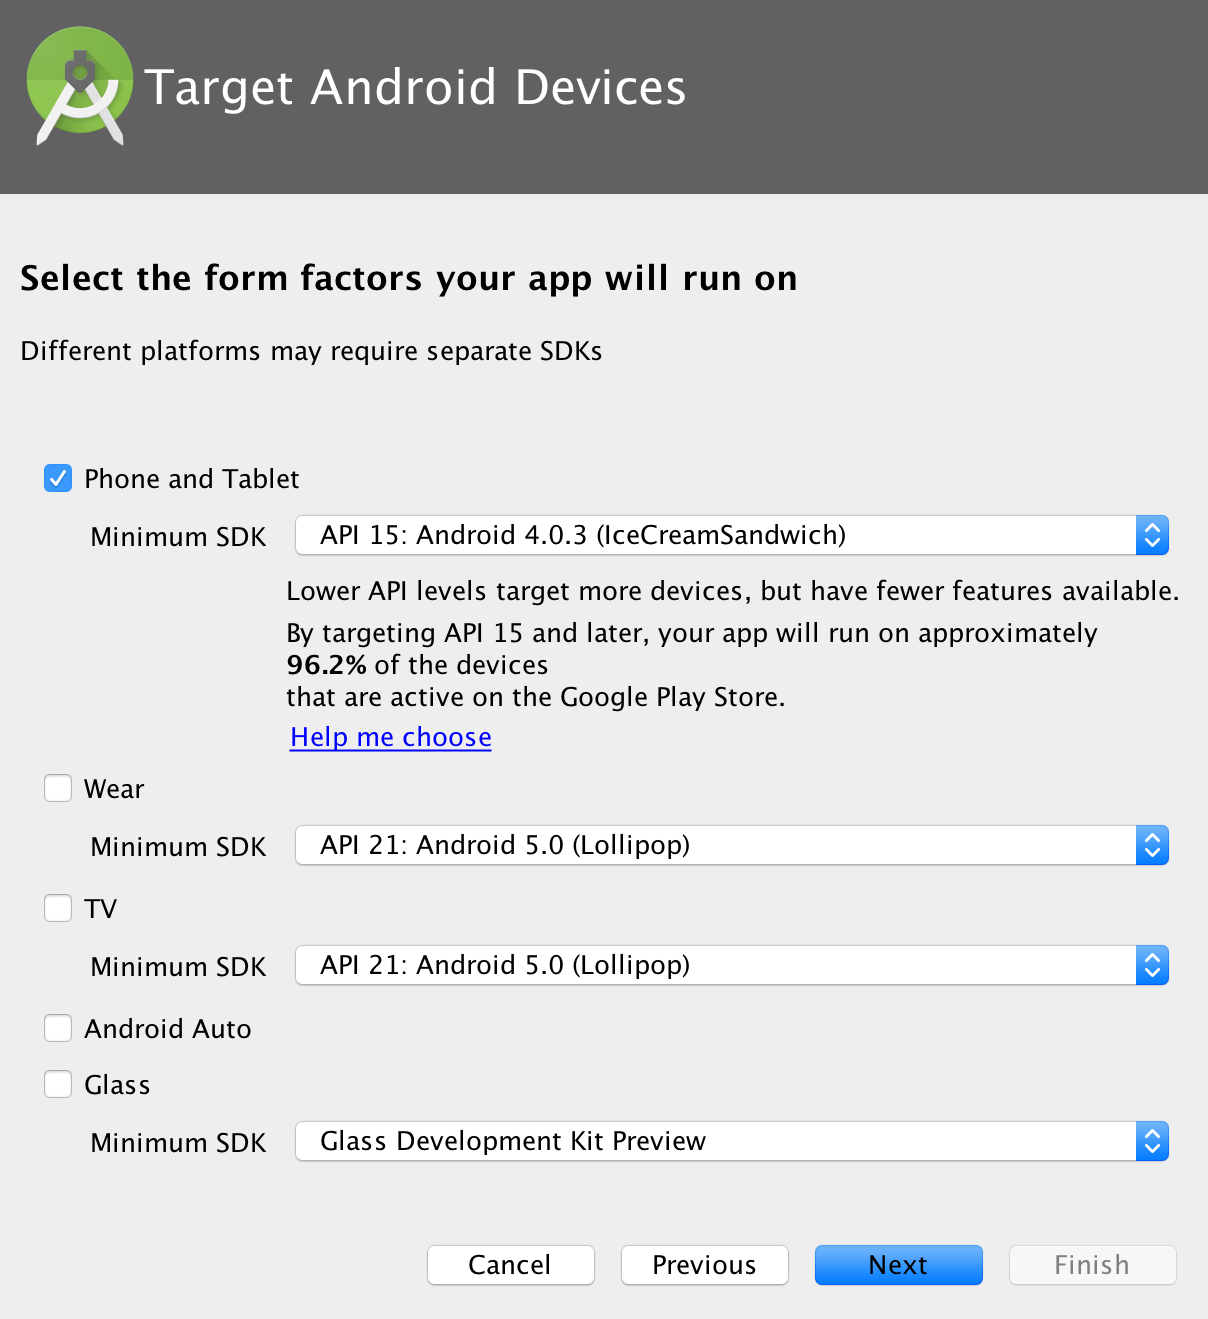 Target android devices